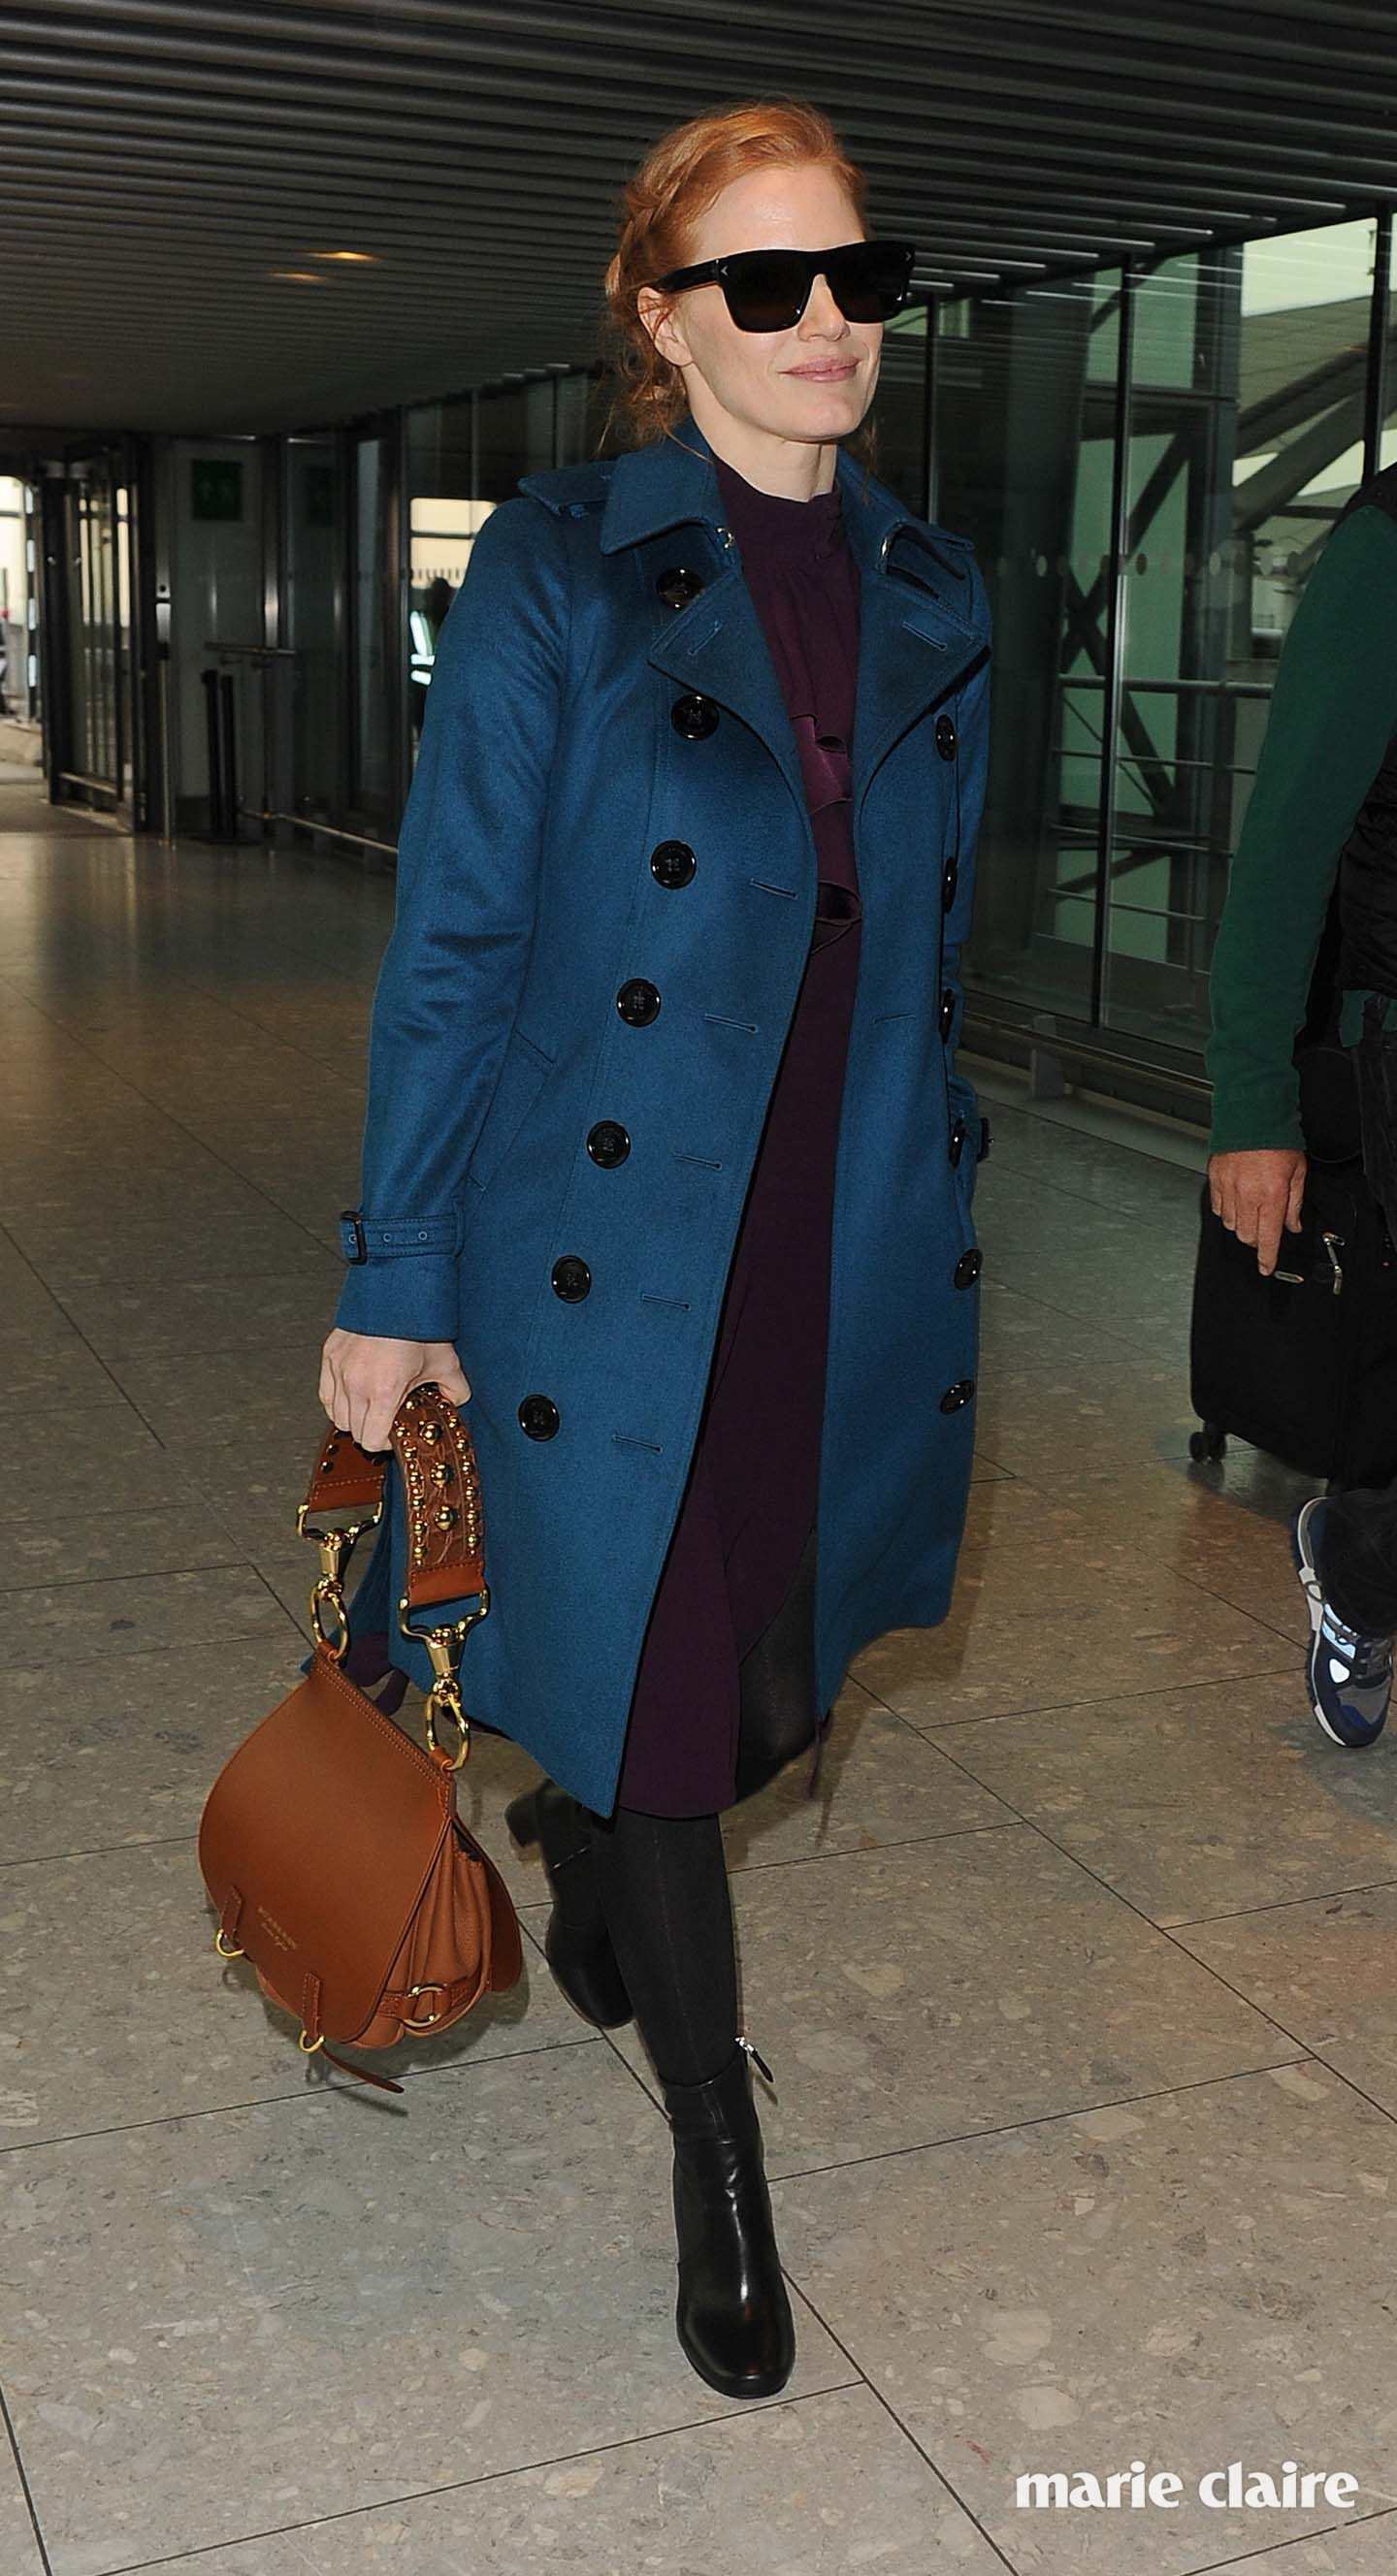 Jessica Chastain arriving at Heathrow Airport Featuring: Jessica Chastain Where: London, United Kingdom When: 25 Oct 2016 Credit: Will Alexander/WENN.com